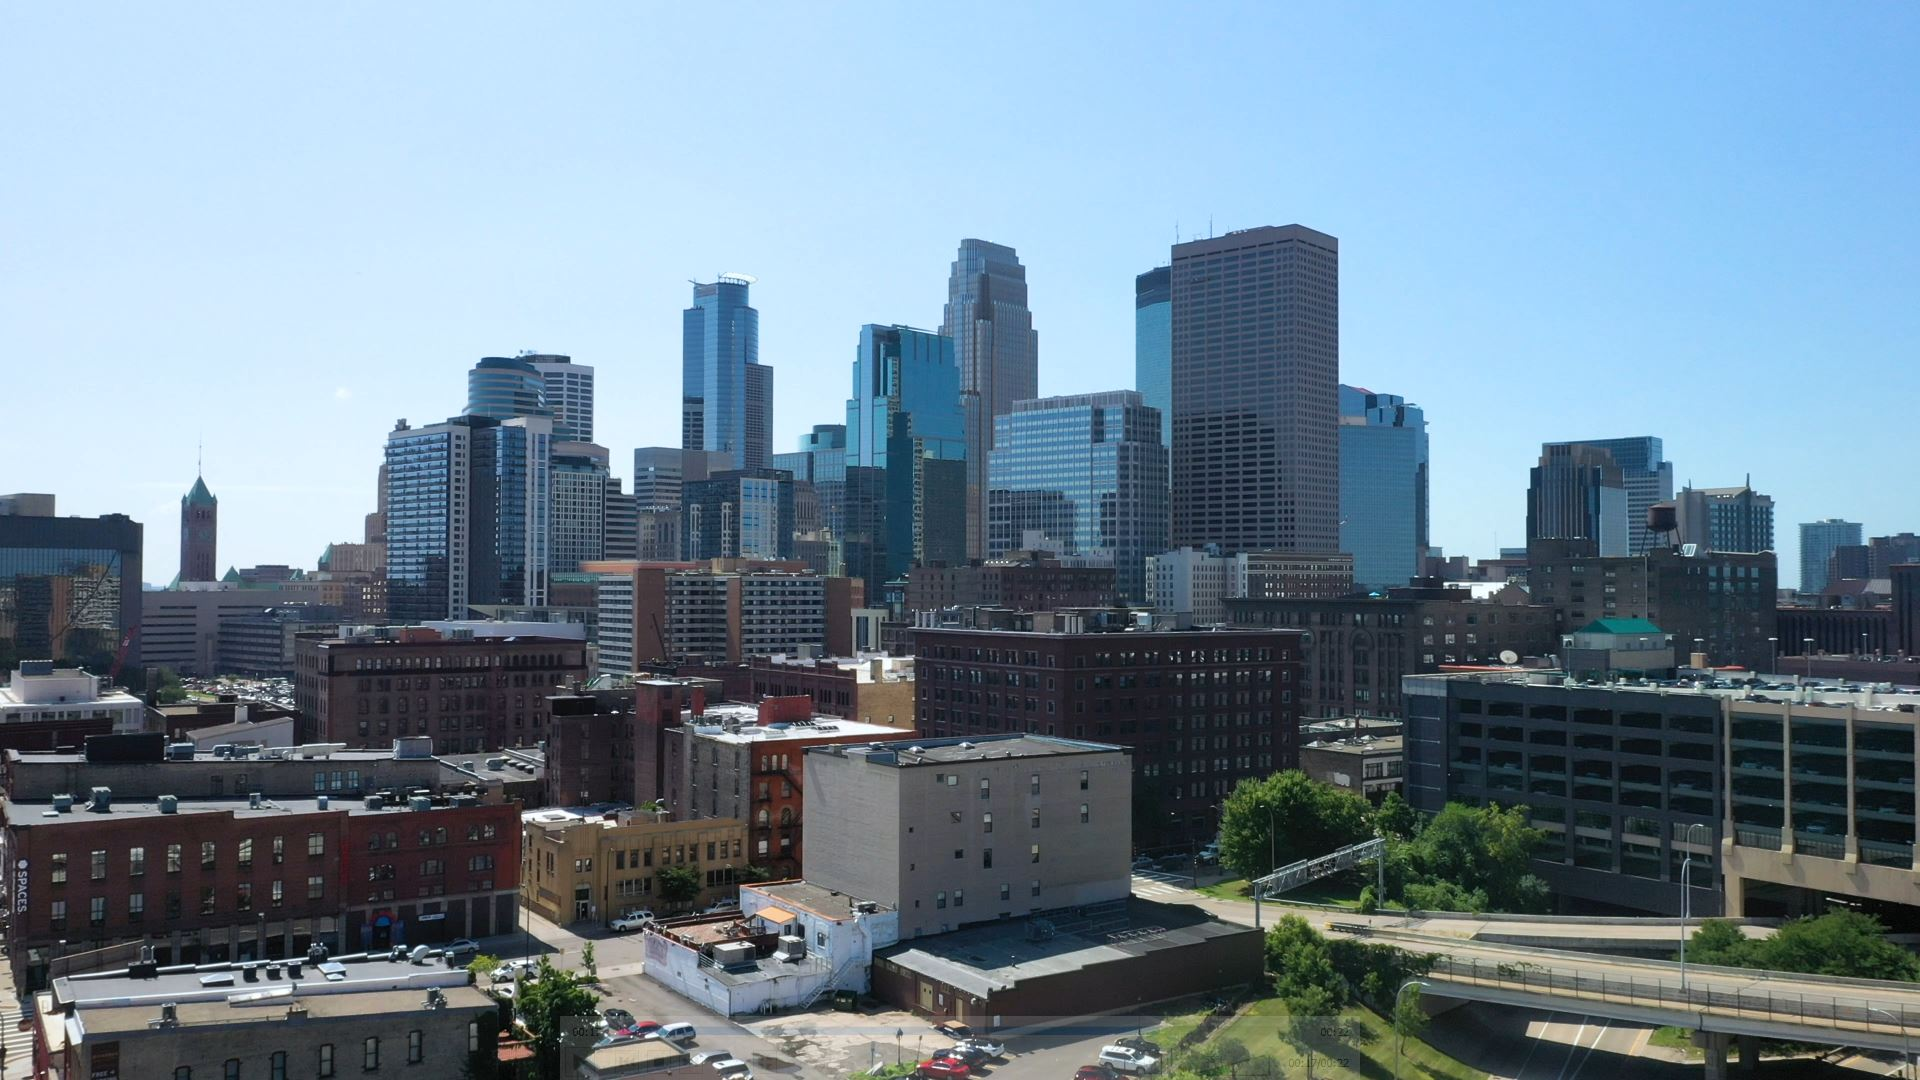 background image of twin cities skyline